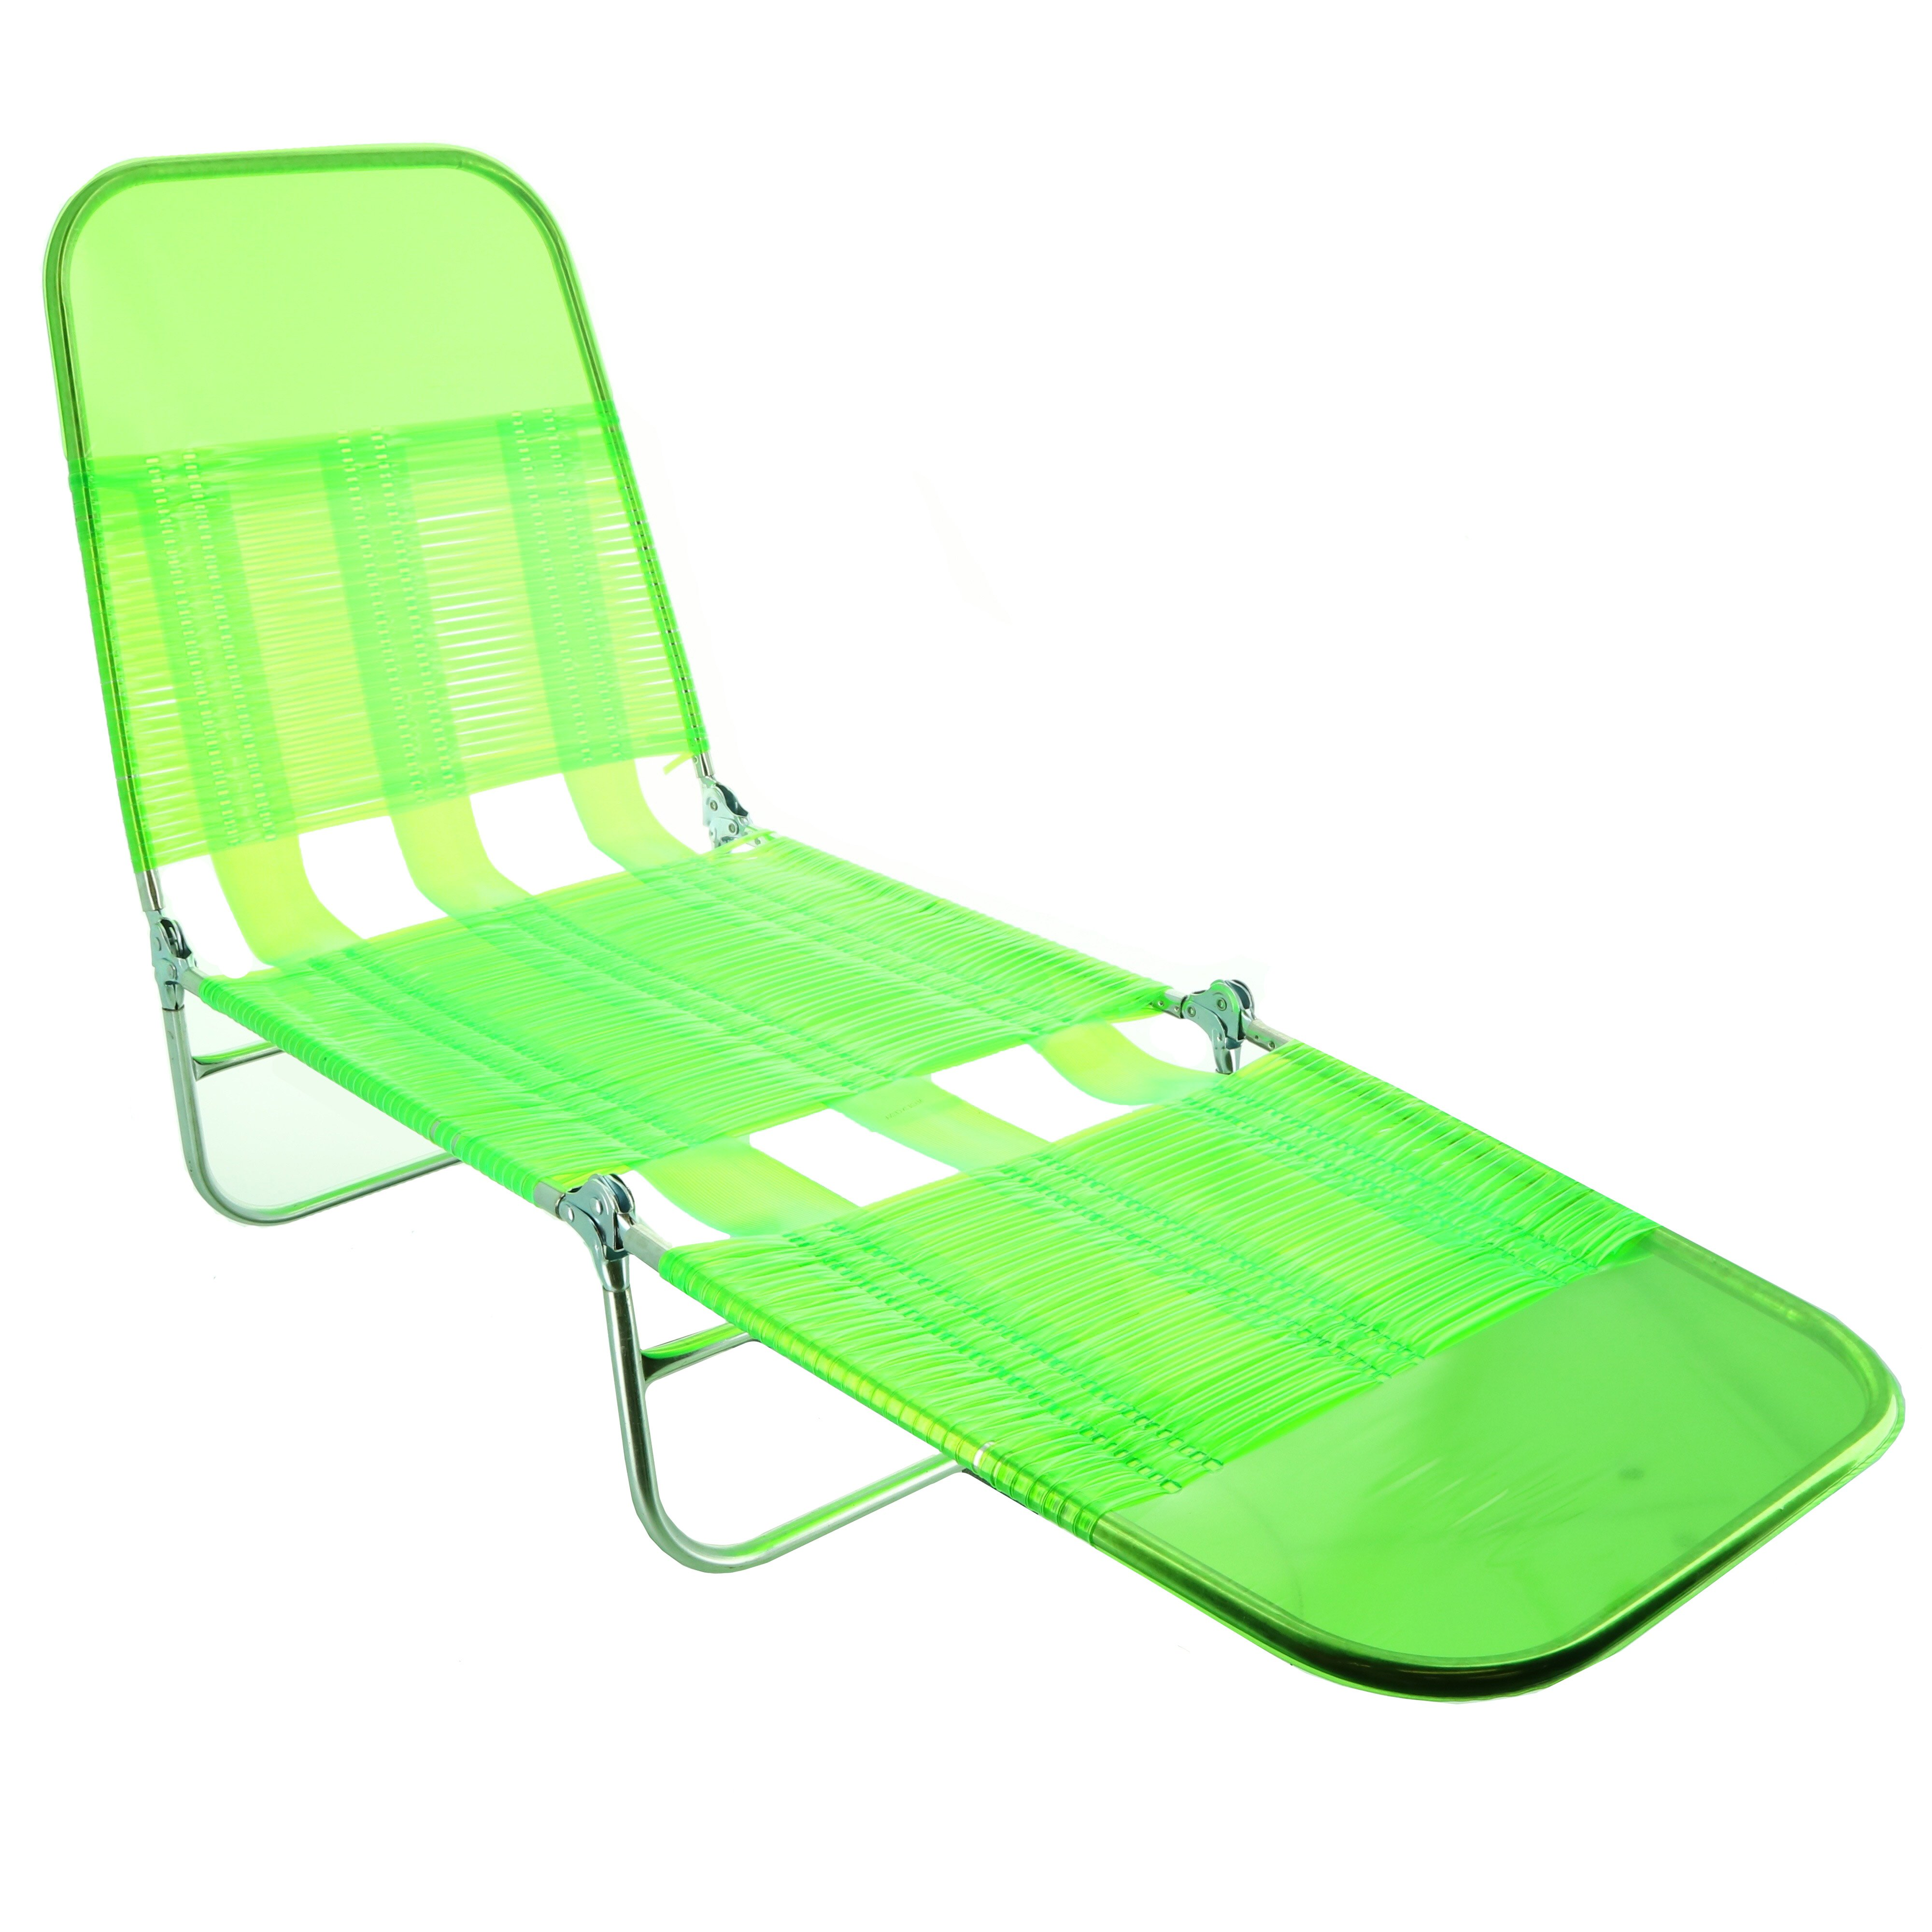 Shin Crest Lime Green Folding Lounge Chair Shop Chairs Seating At H E B